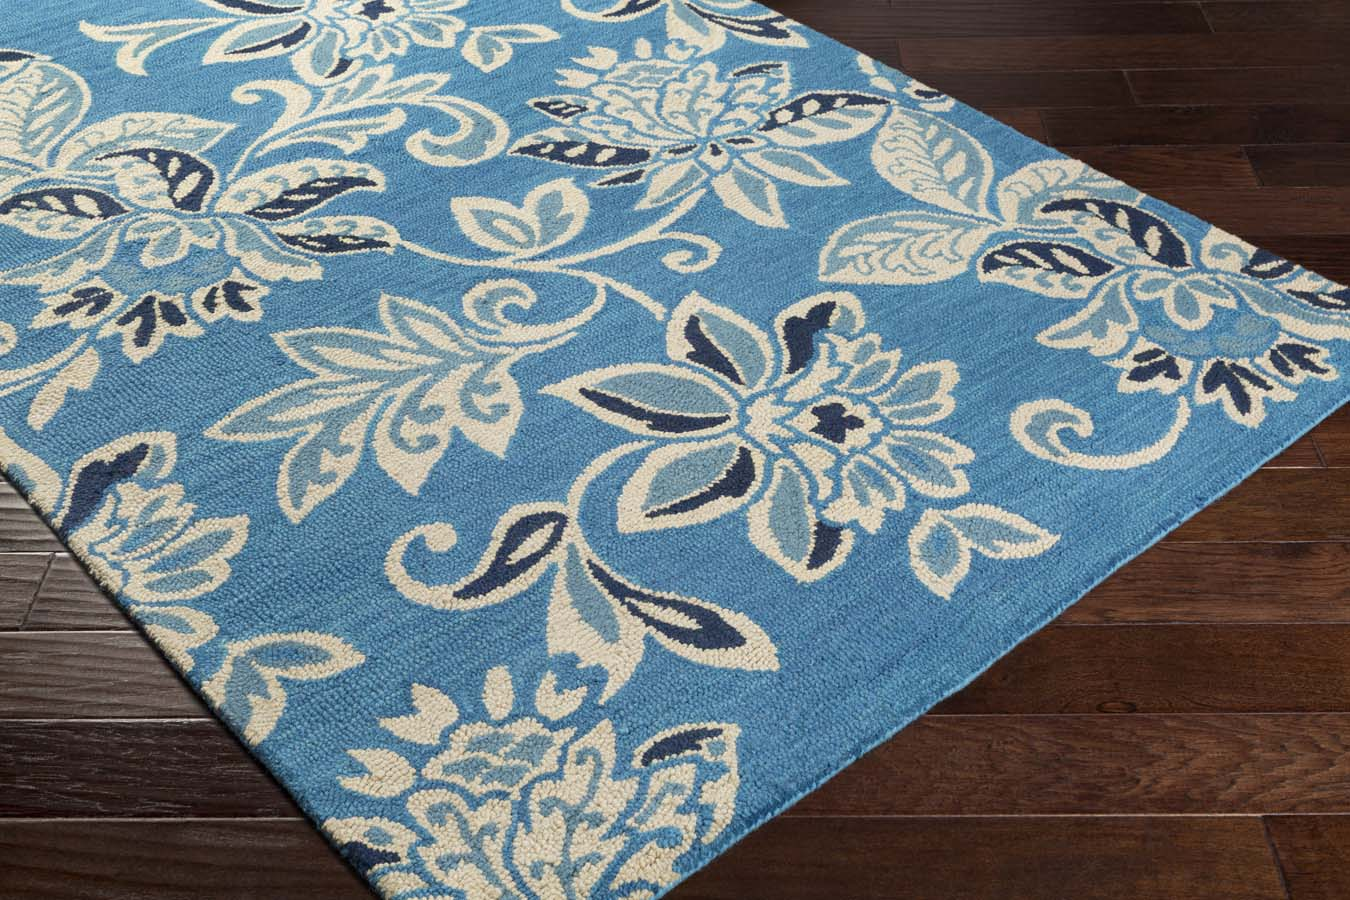 Artistic Weavers RHODES RDS-2318 Elsie Teal Blue/Off-White Rug